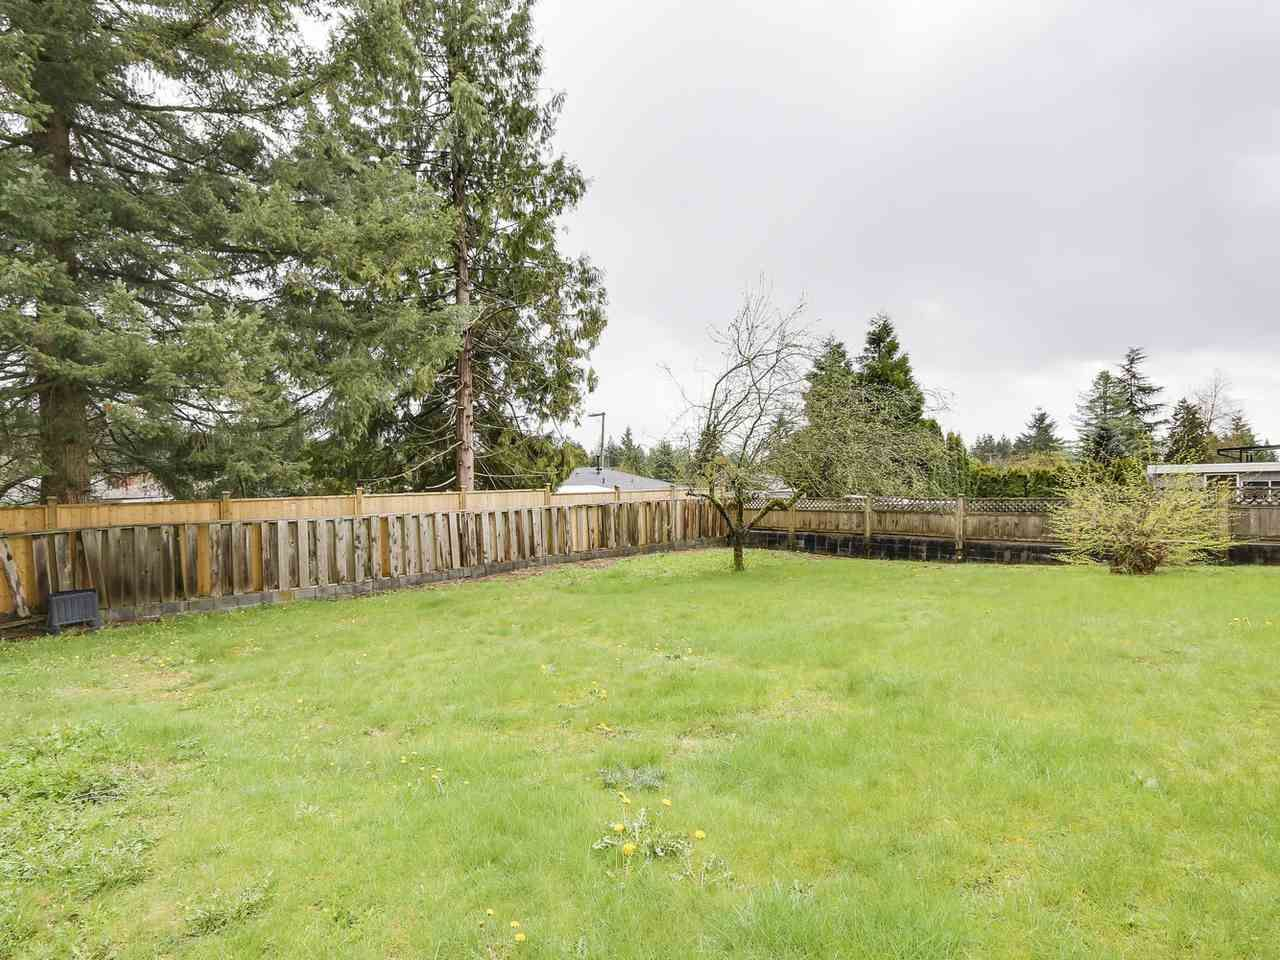 Photo 19: Photos: 731 LINTON Street in Coquitlam: Central Coquitlam House for sale : MLS®# R2157896